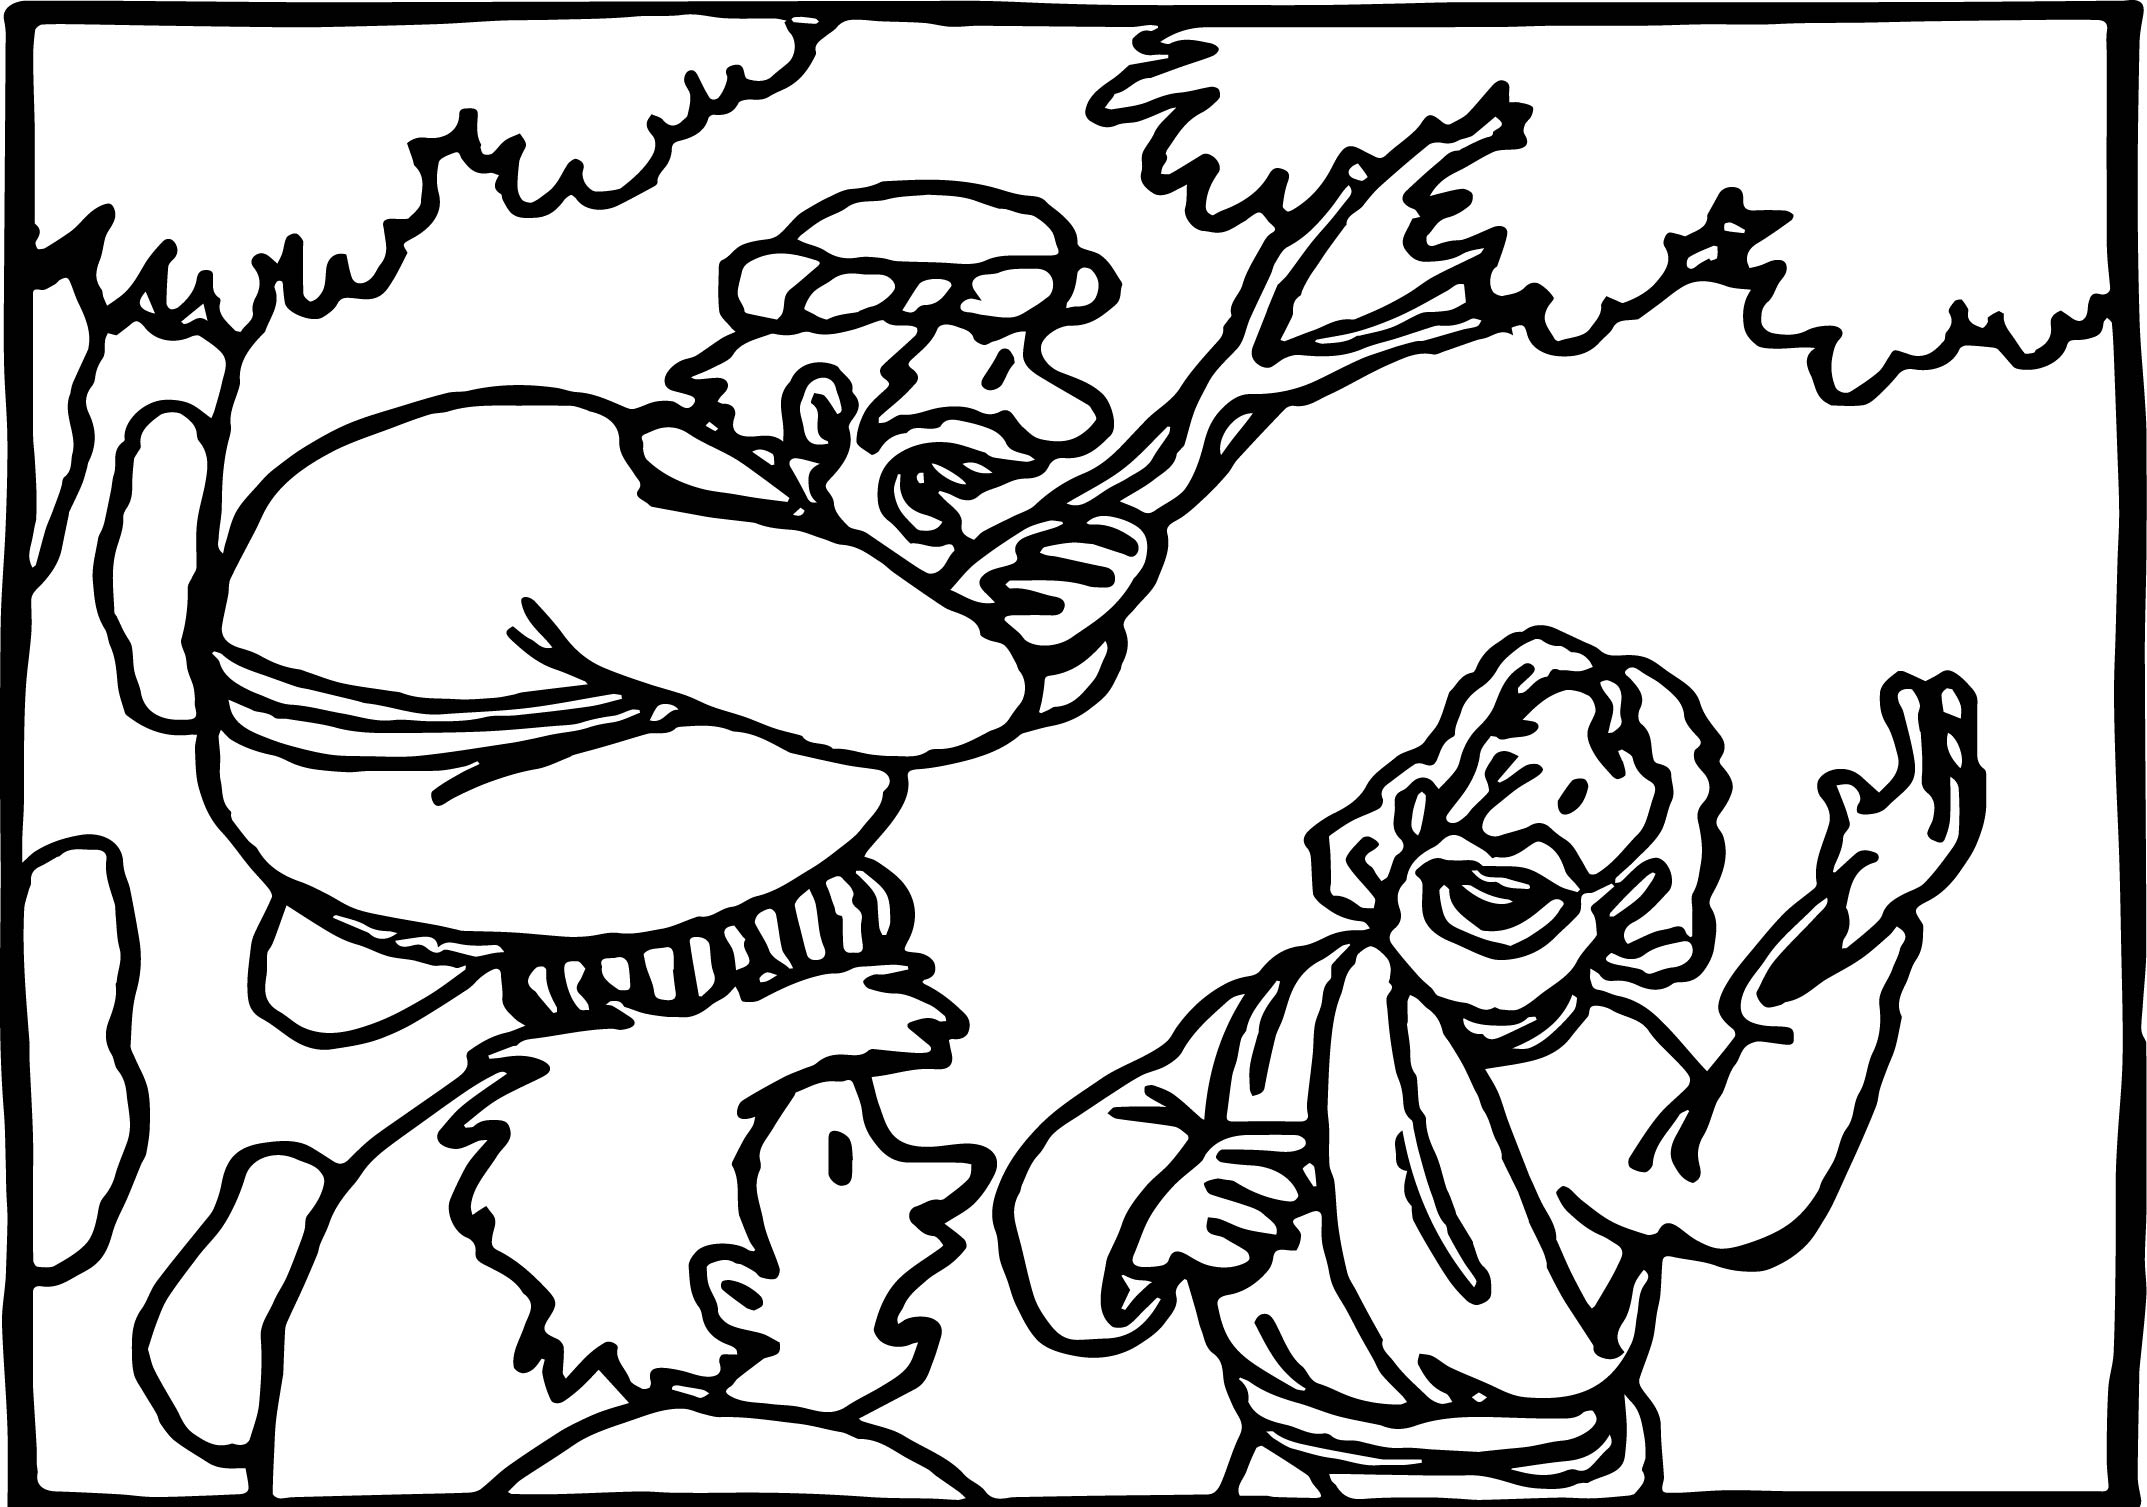 zacchaeus coloring page - zacchaeus cut out coloring sketch templates